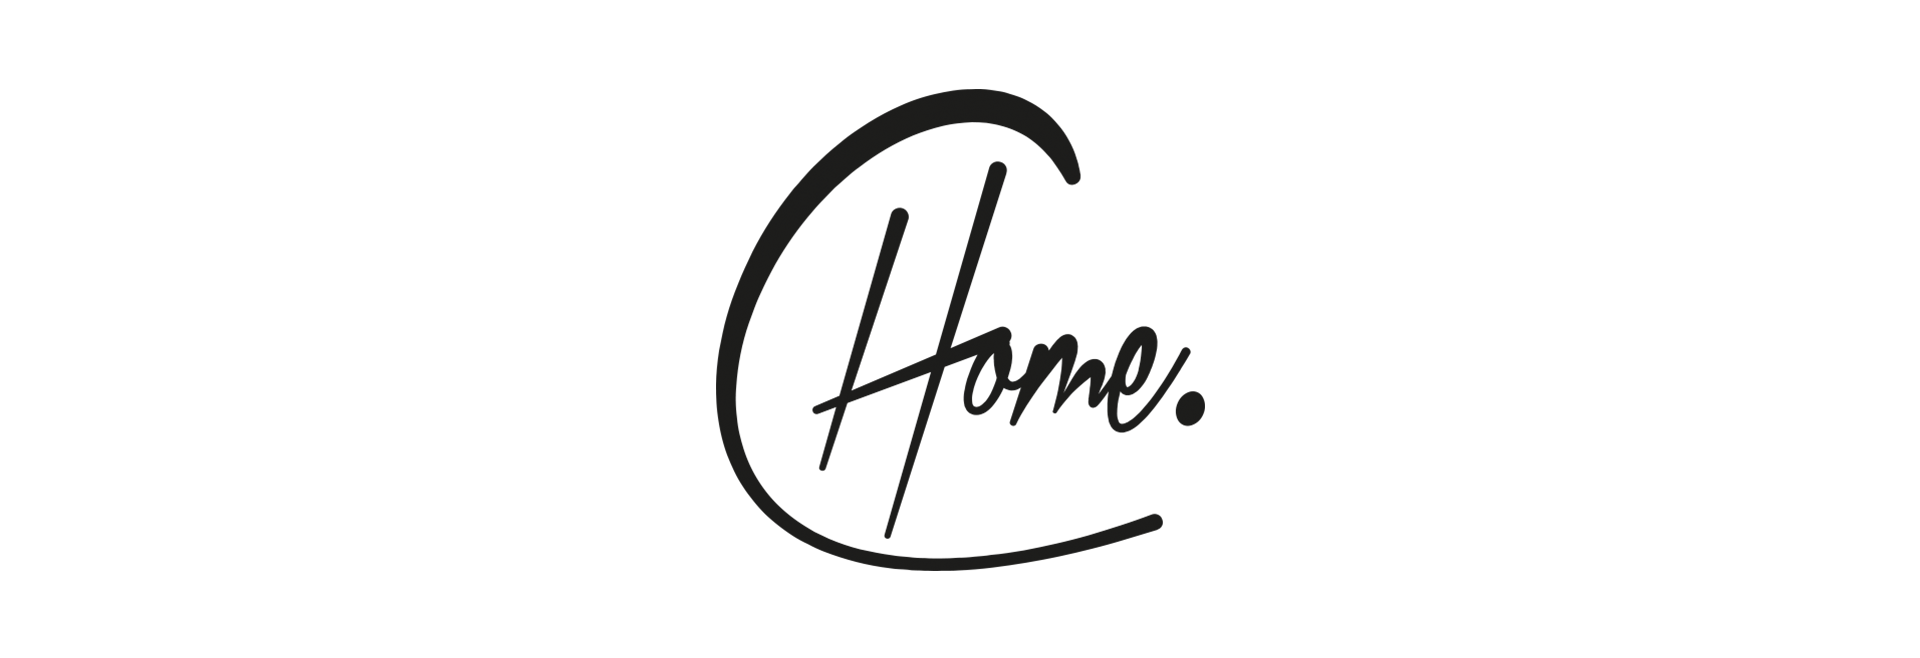 comehome_2015_logo